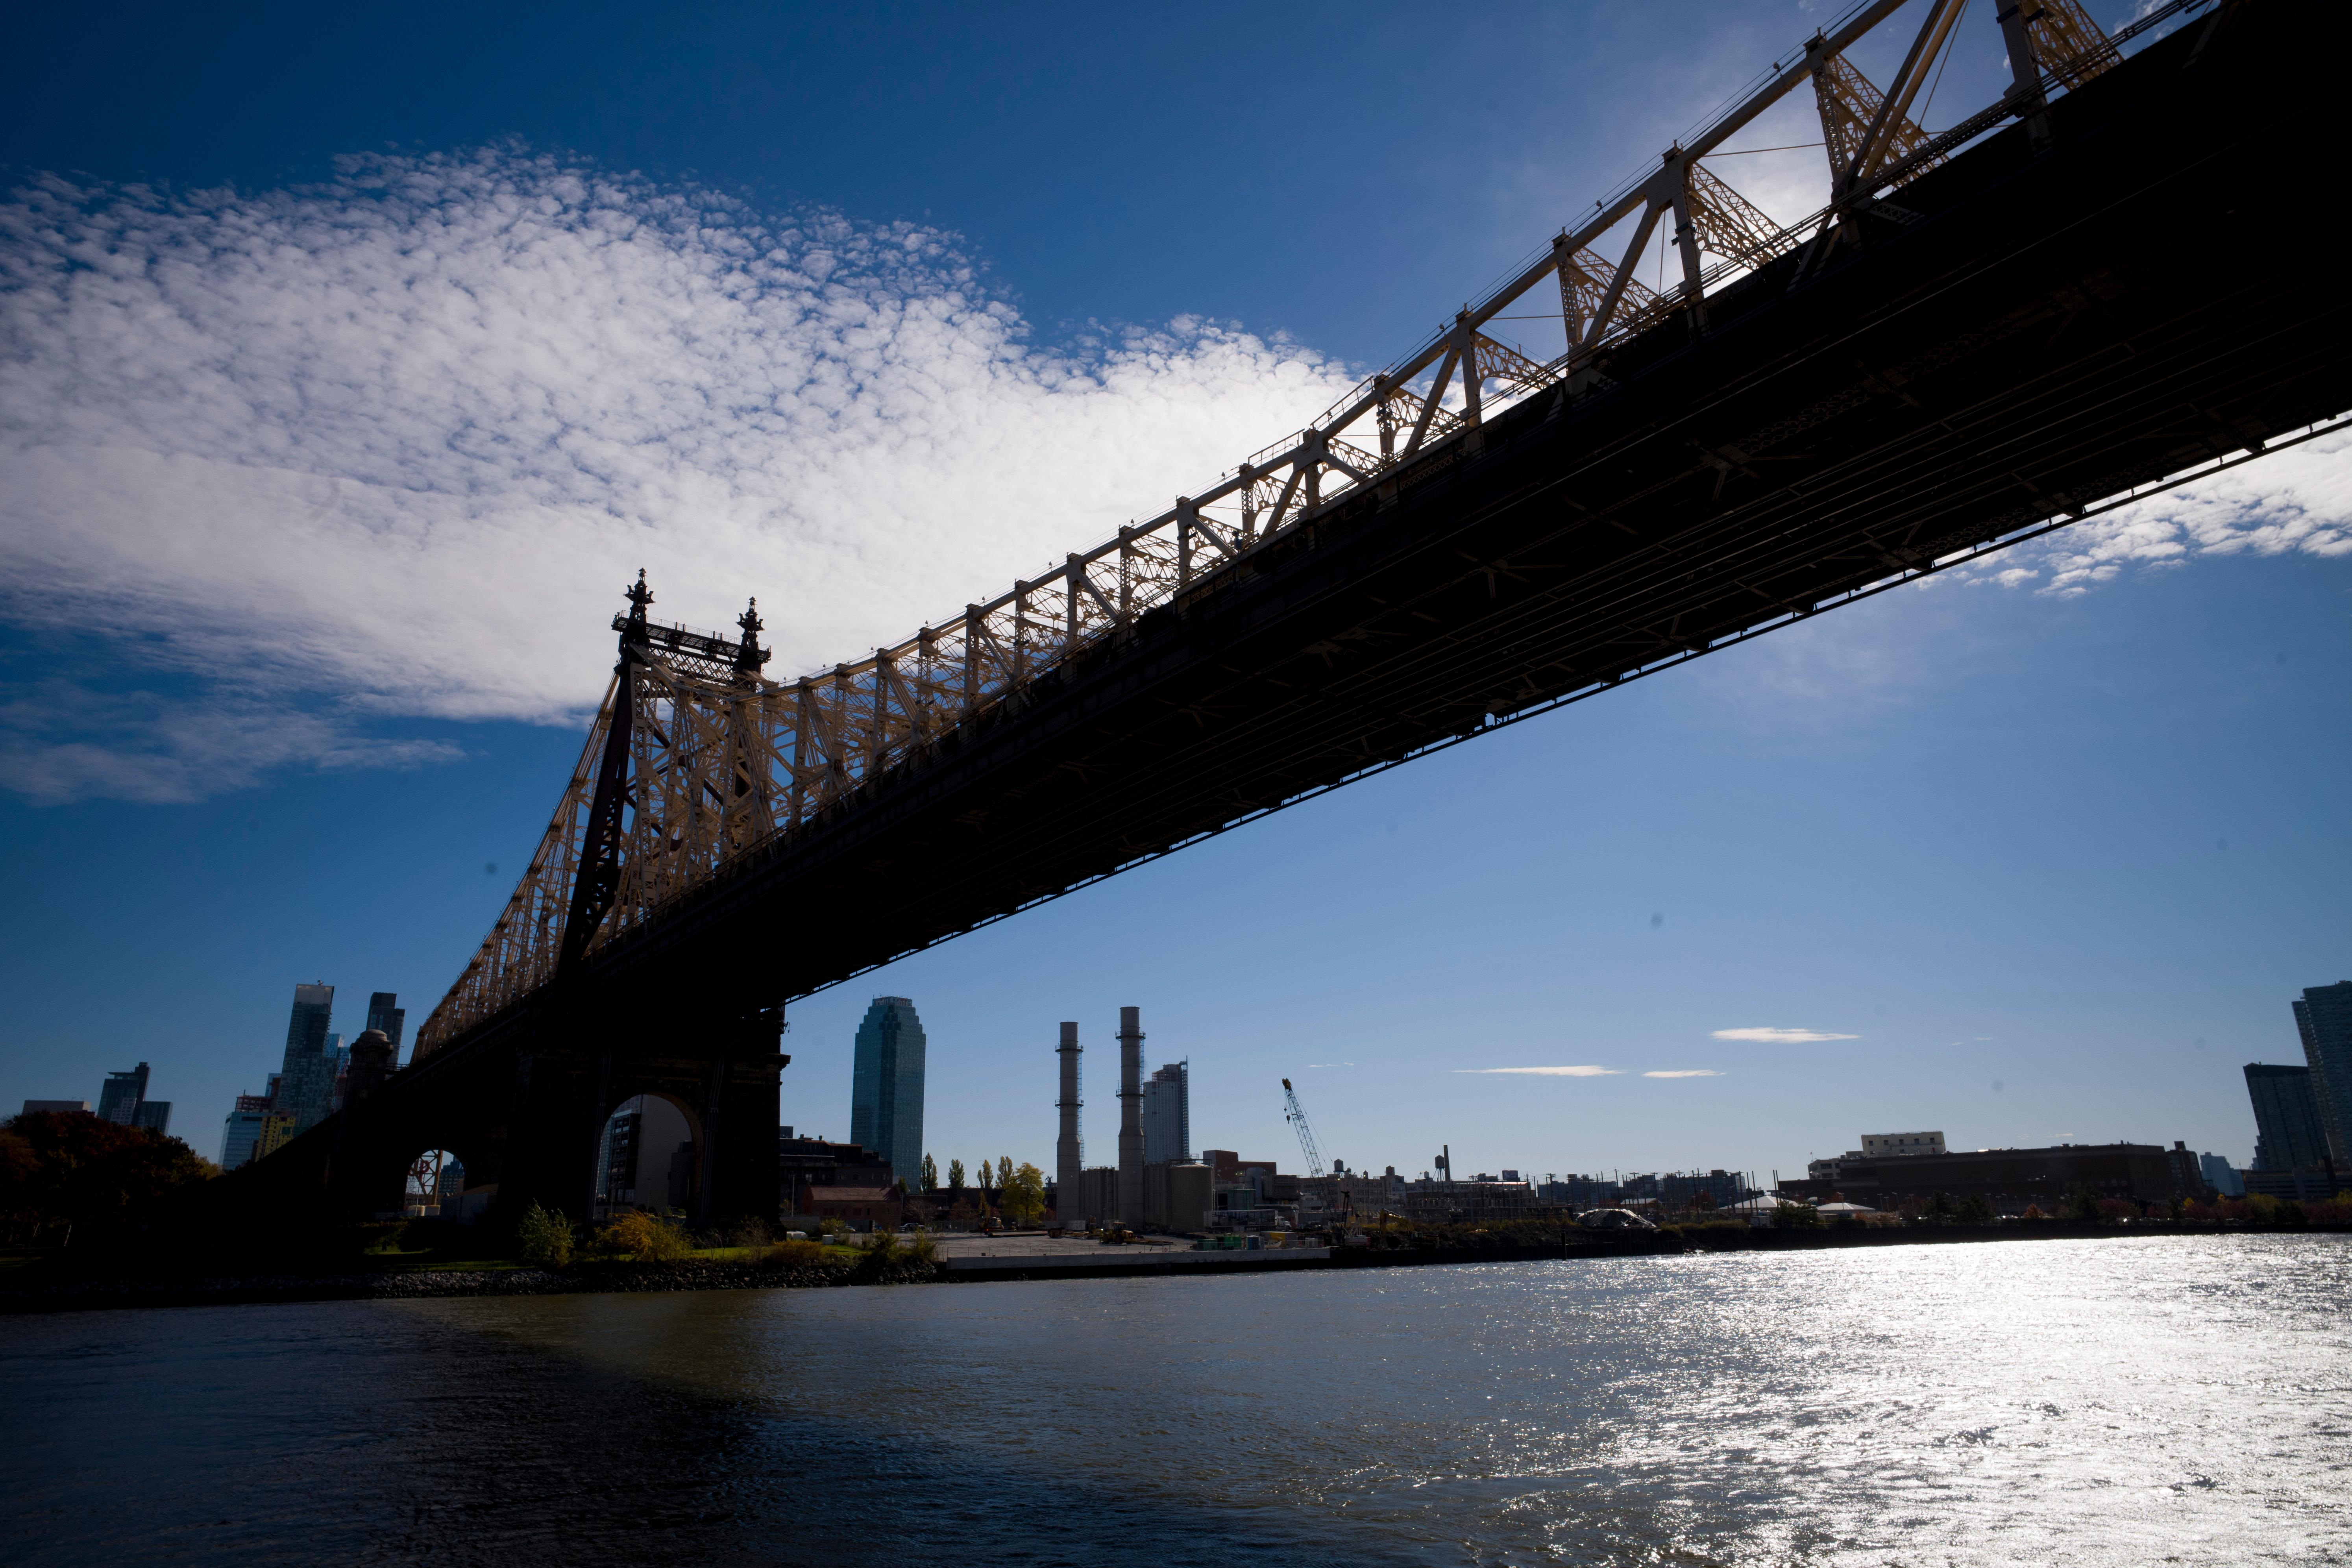 FILE- In this Wednesday, Nov. 7, 2018, file photo, the East River flows under the Ed Koch Queensboro Bridge and past the Long Island City skyline and waterfront in New York. On Tuesday, Nov. 13, Amazon said it will split its second headquarters between Long Island City in New York and Crystal City. (AP Photo/Mark Lennihan, File)